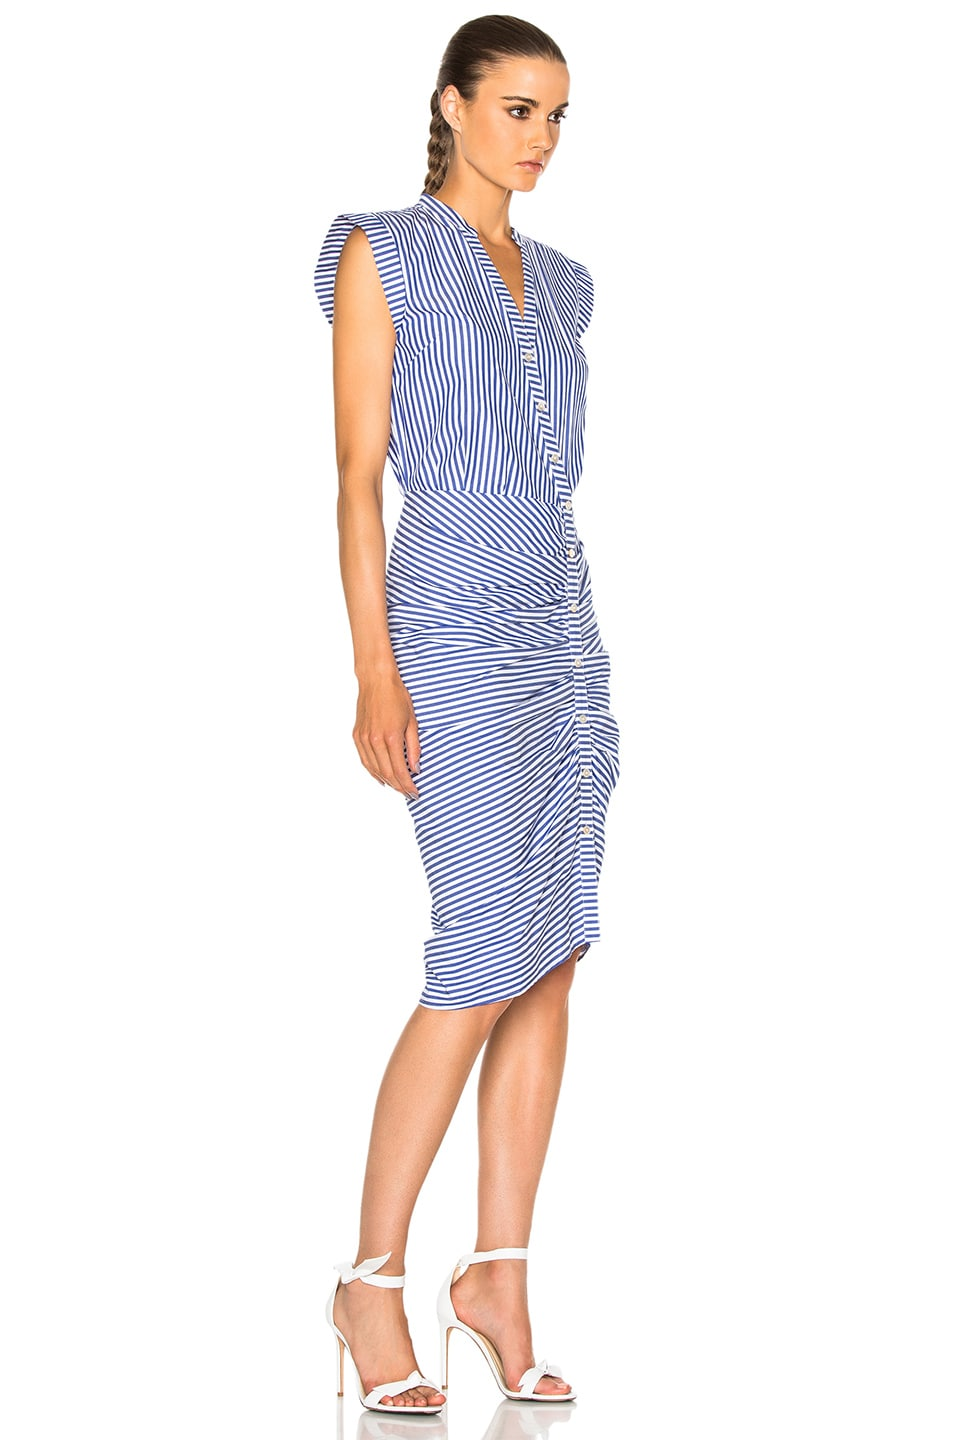 Veronica Beard Ruched Shirt Dress In Blue White Stripe Fwrd